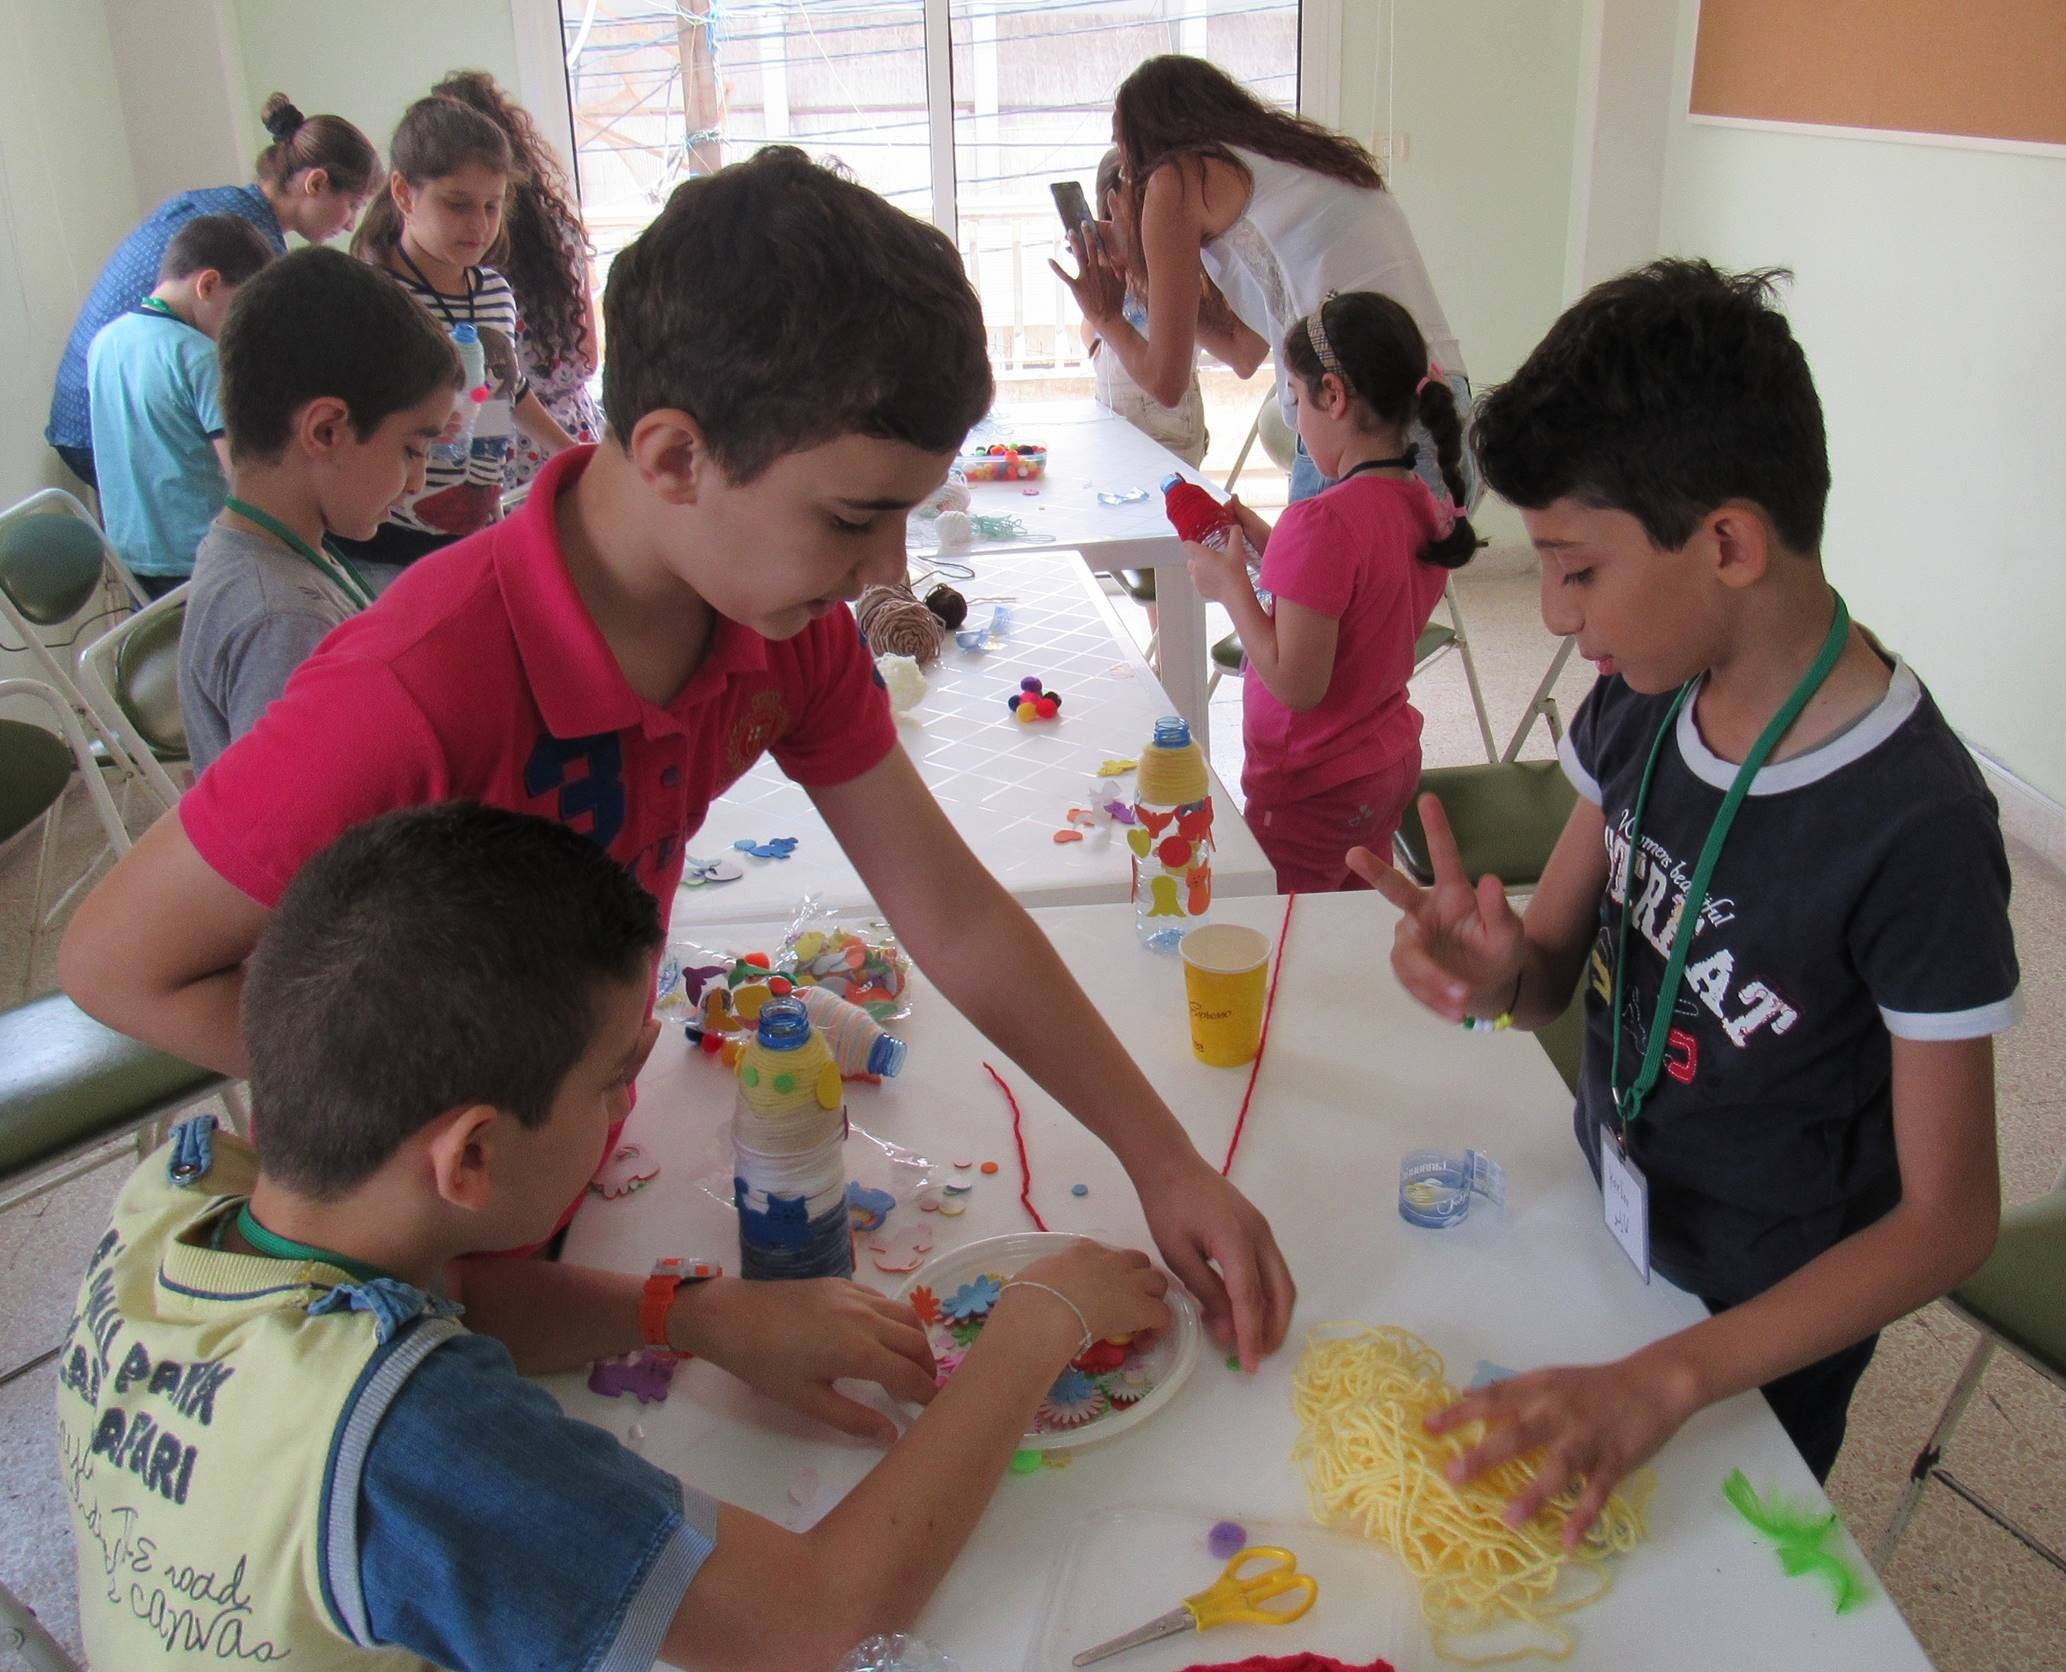 Participating in expressive activities such as art and puppetry creates a safe space for refugee children to begin processing their emotions